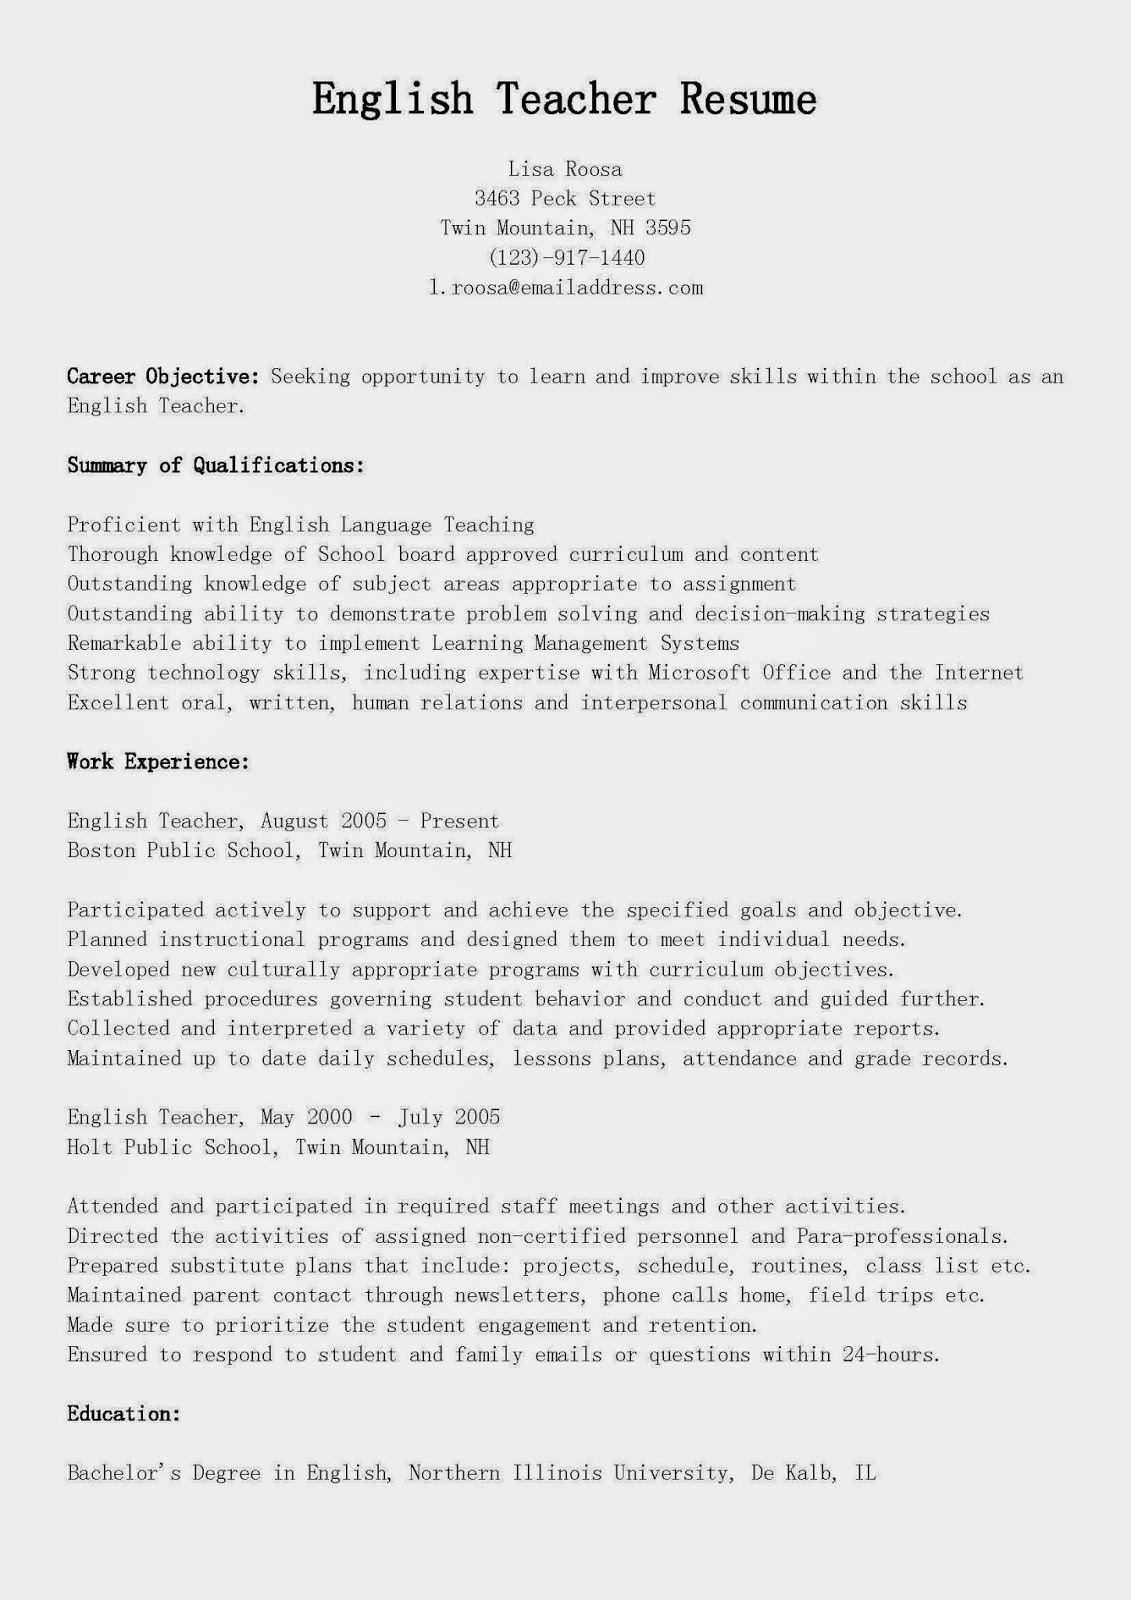 first year english teacher resume create professional resumes first year english teacher resume career cruising english home english teacher resume examples of honors on